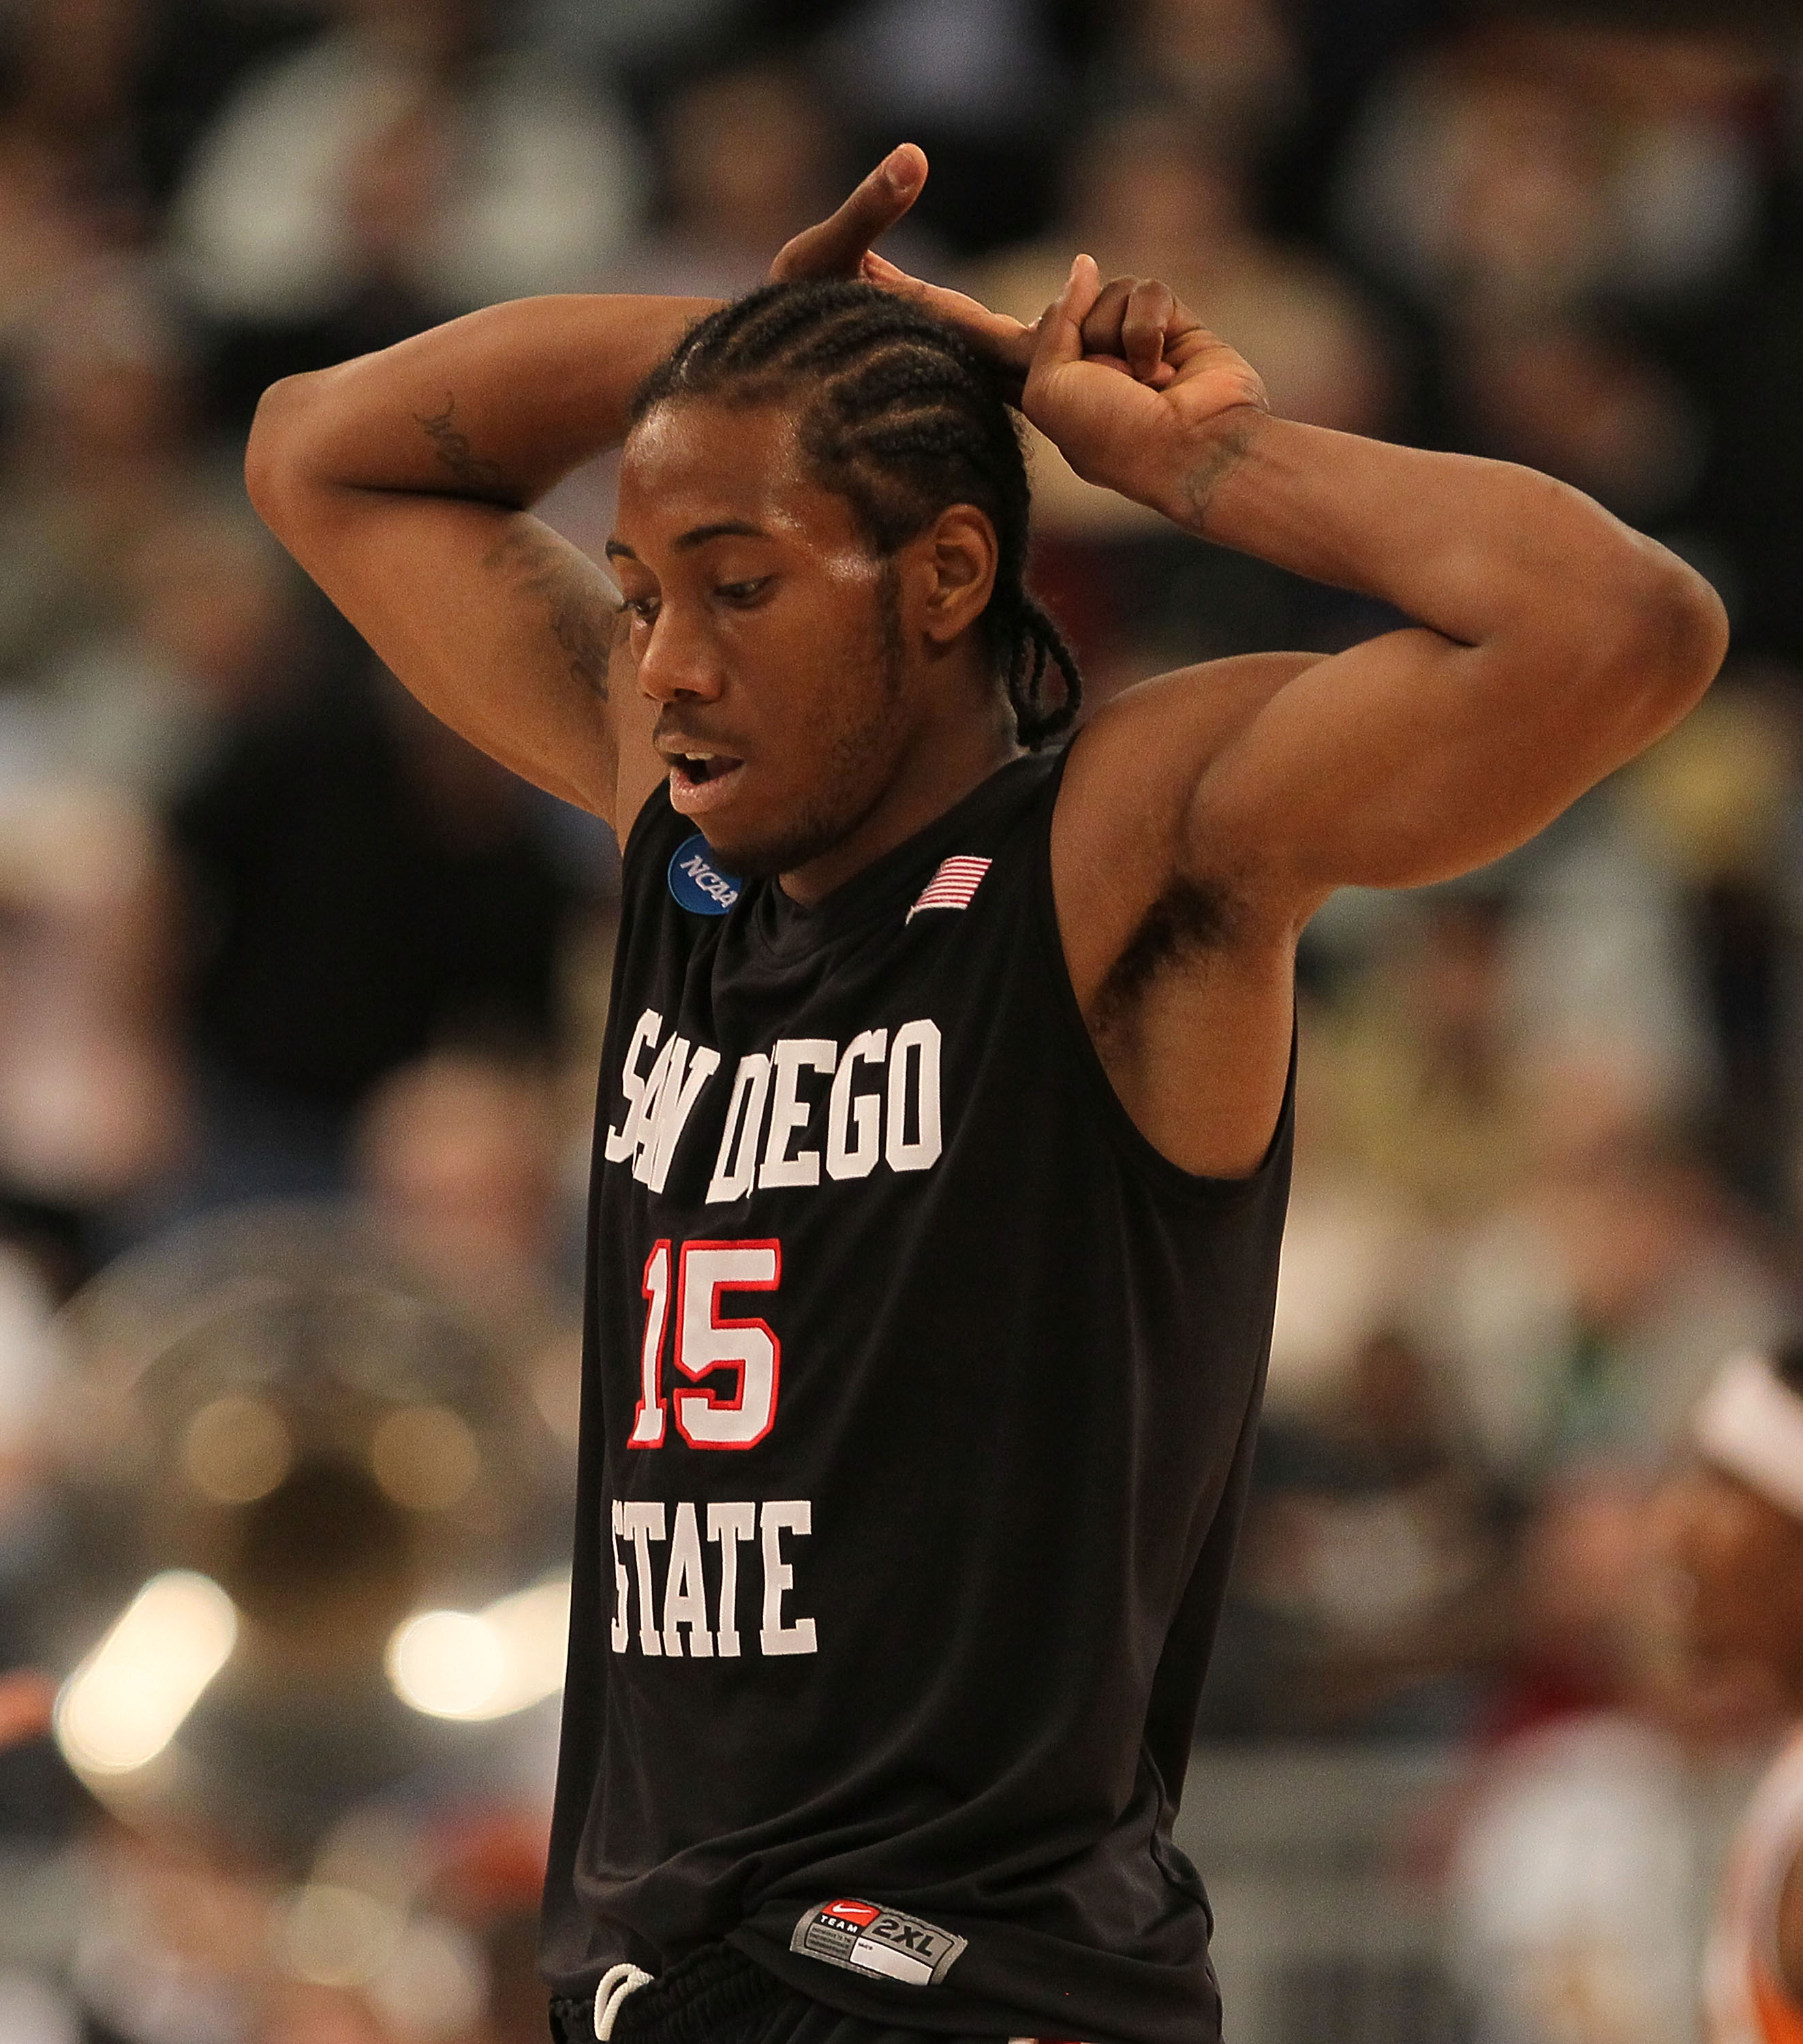 PROVIDENCE, RI - MARCH 18:  Kawhi Leonard #15 of the San Diego State Axtecs reacts against the Tennessee Volunteers during the first round of the 2010 NCAA men's basketball tournament at Dunkin' Donuts Center on March 18, 2010 in Providence, Rhode Island.